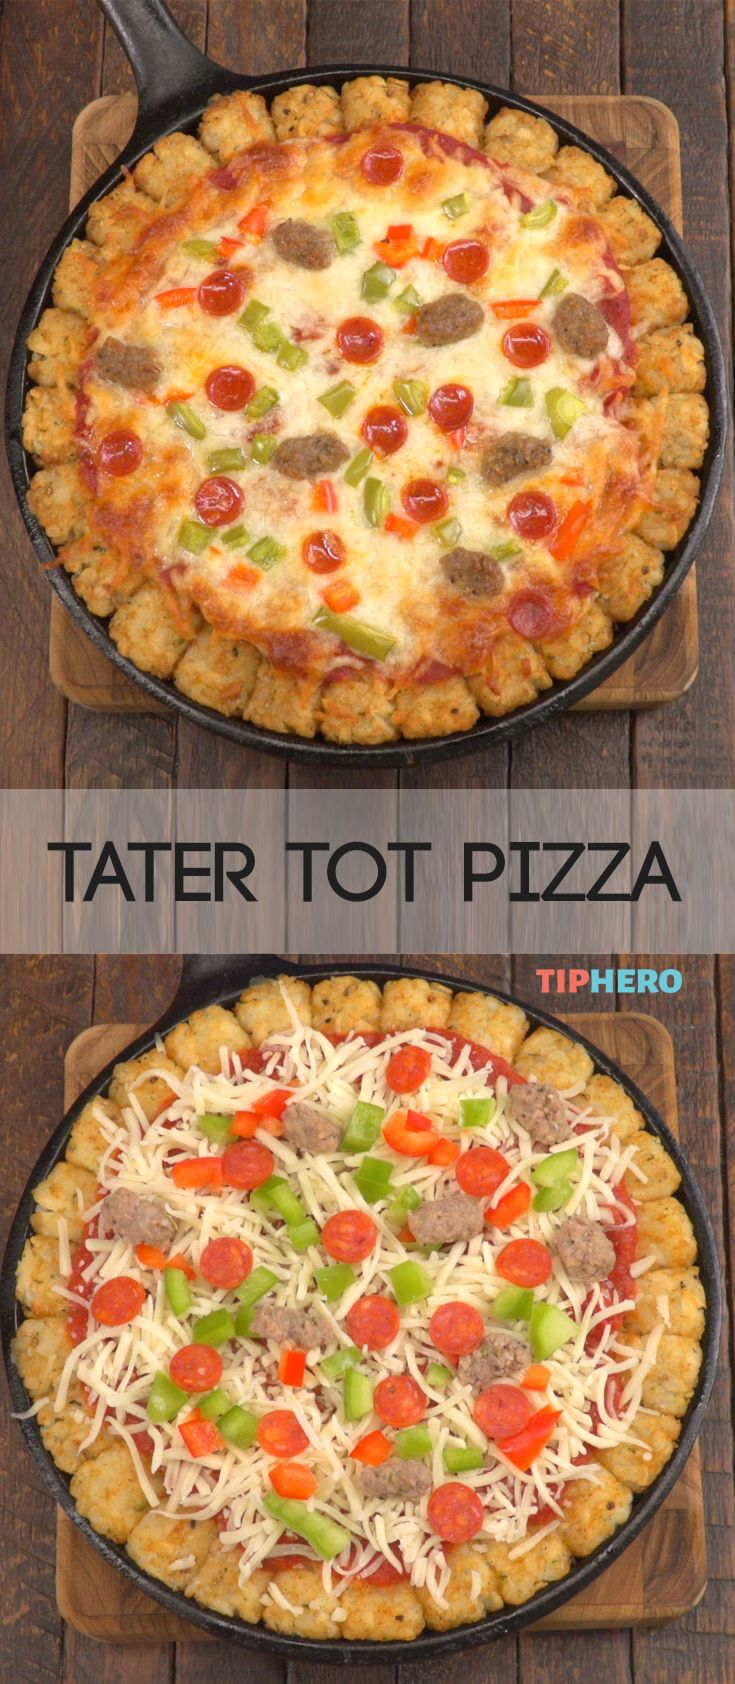 Tater Tot Pizza Crust The Kitchen